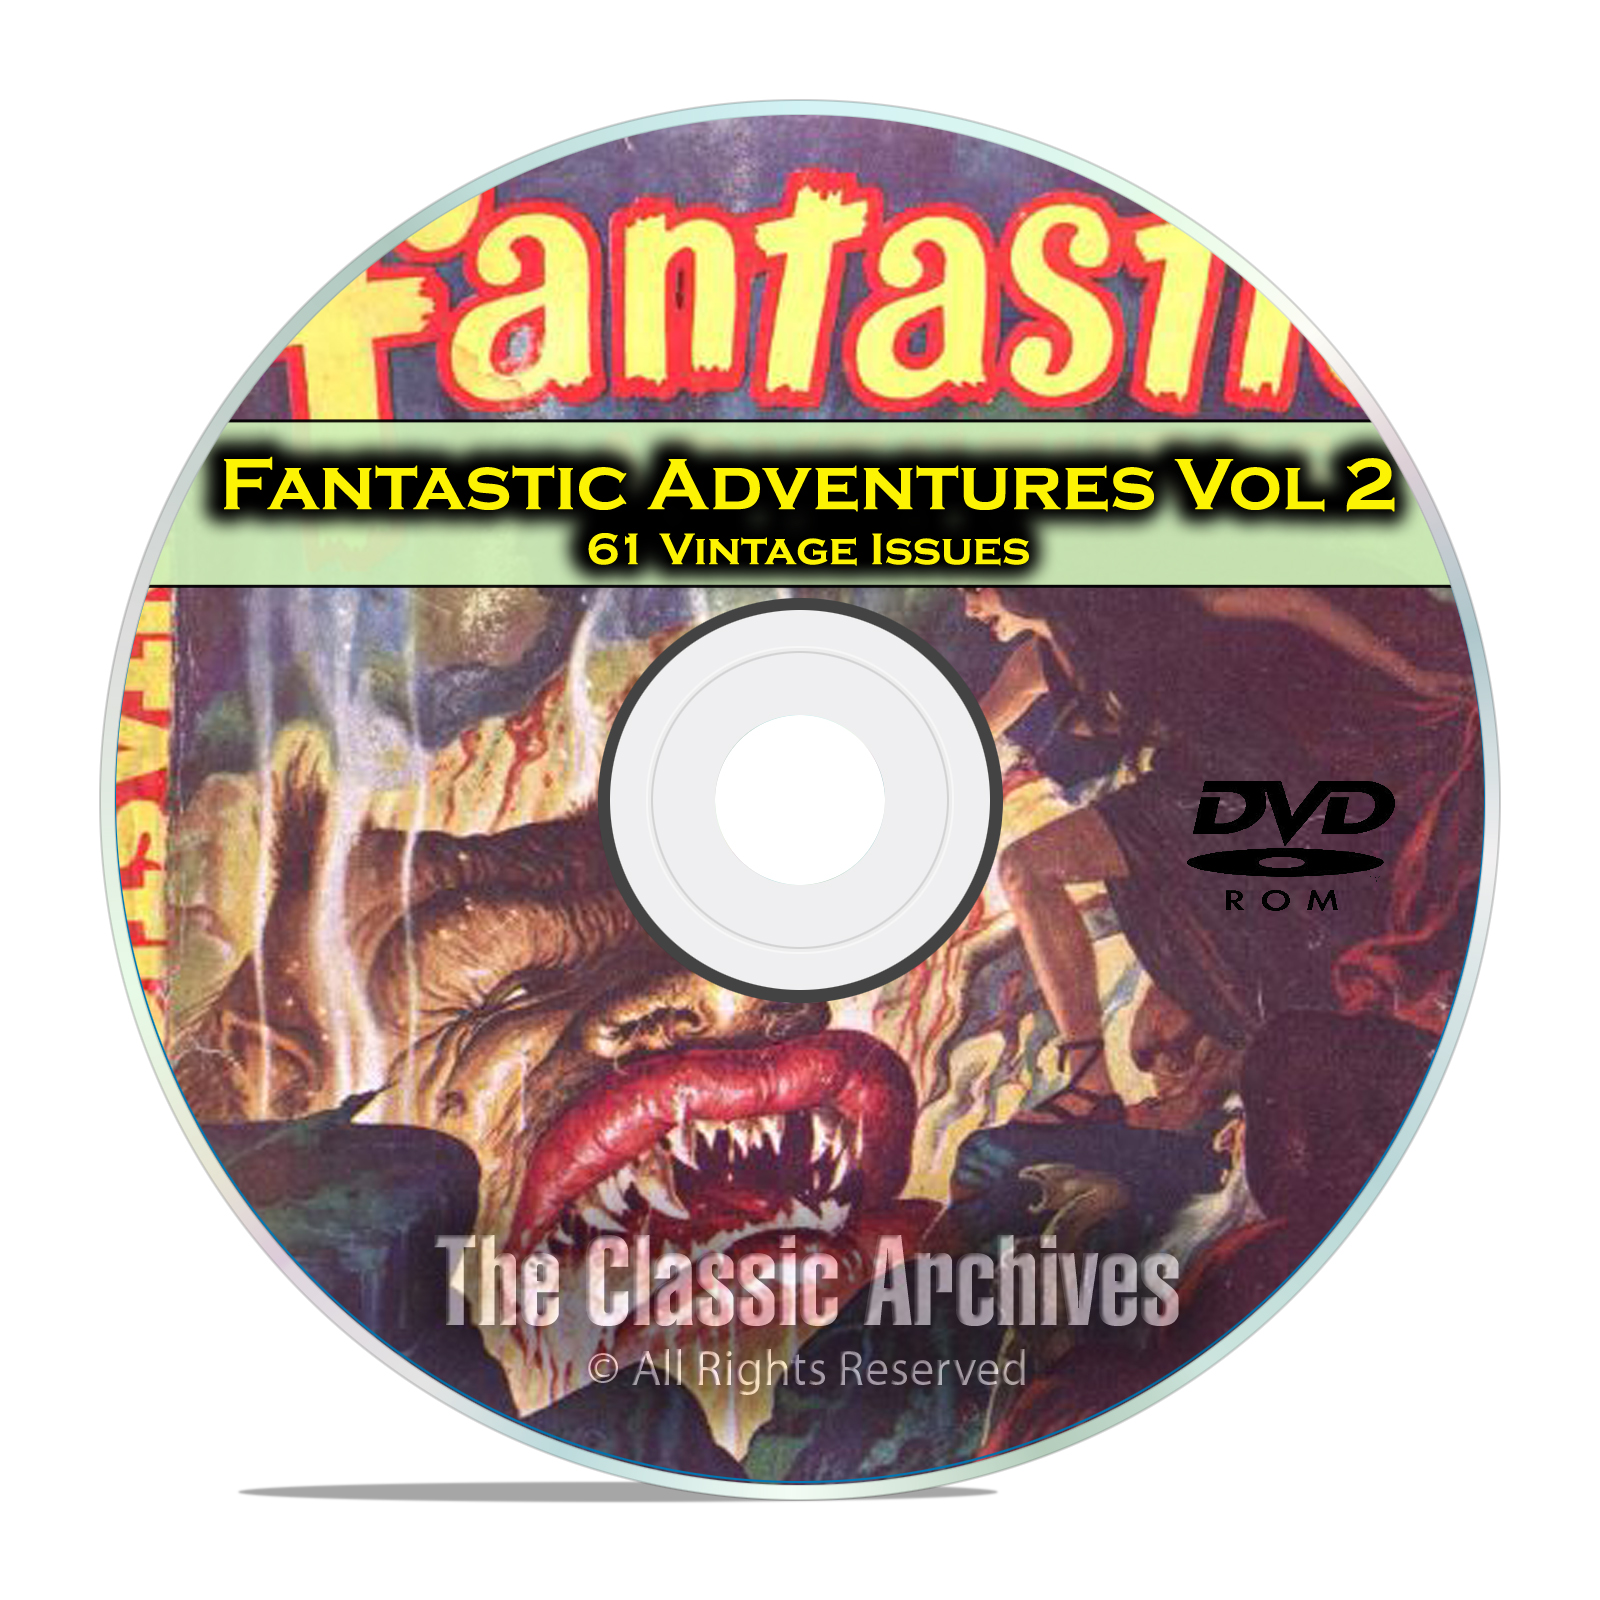 Fantastic Adventures Vol 2, 61 Vintage Pulp Magazine Golden Age Fiction DVD